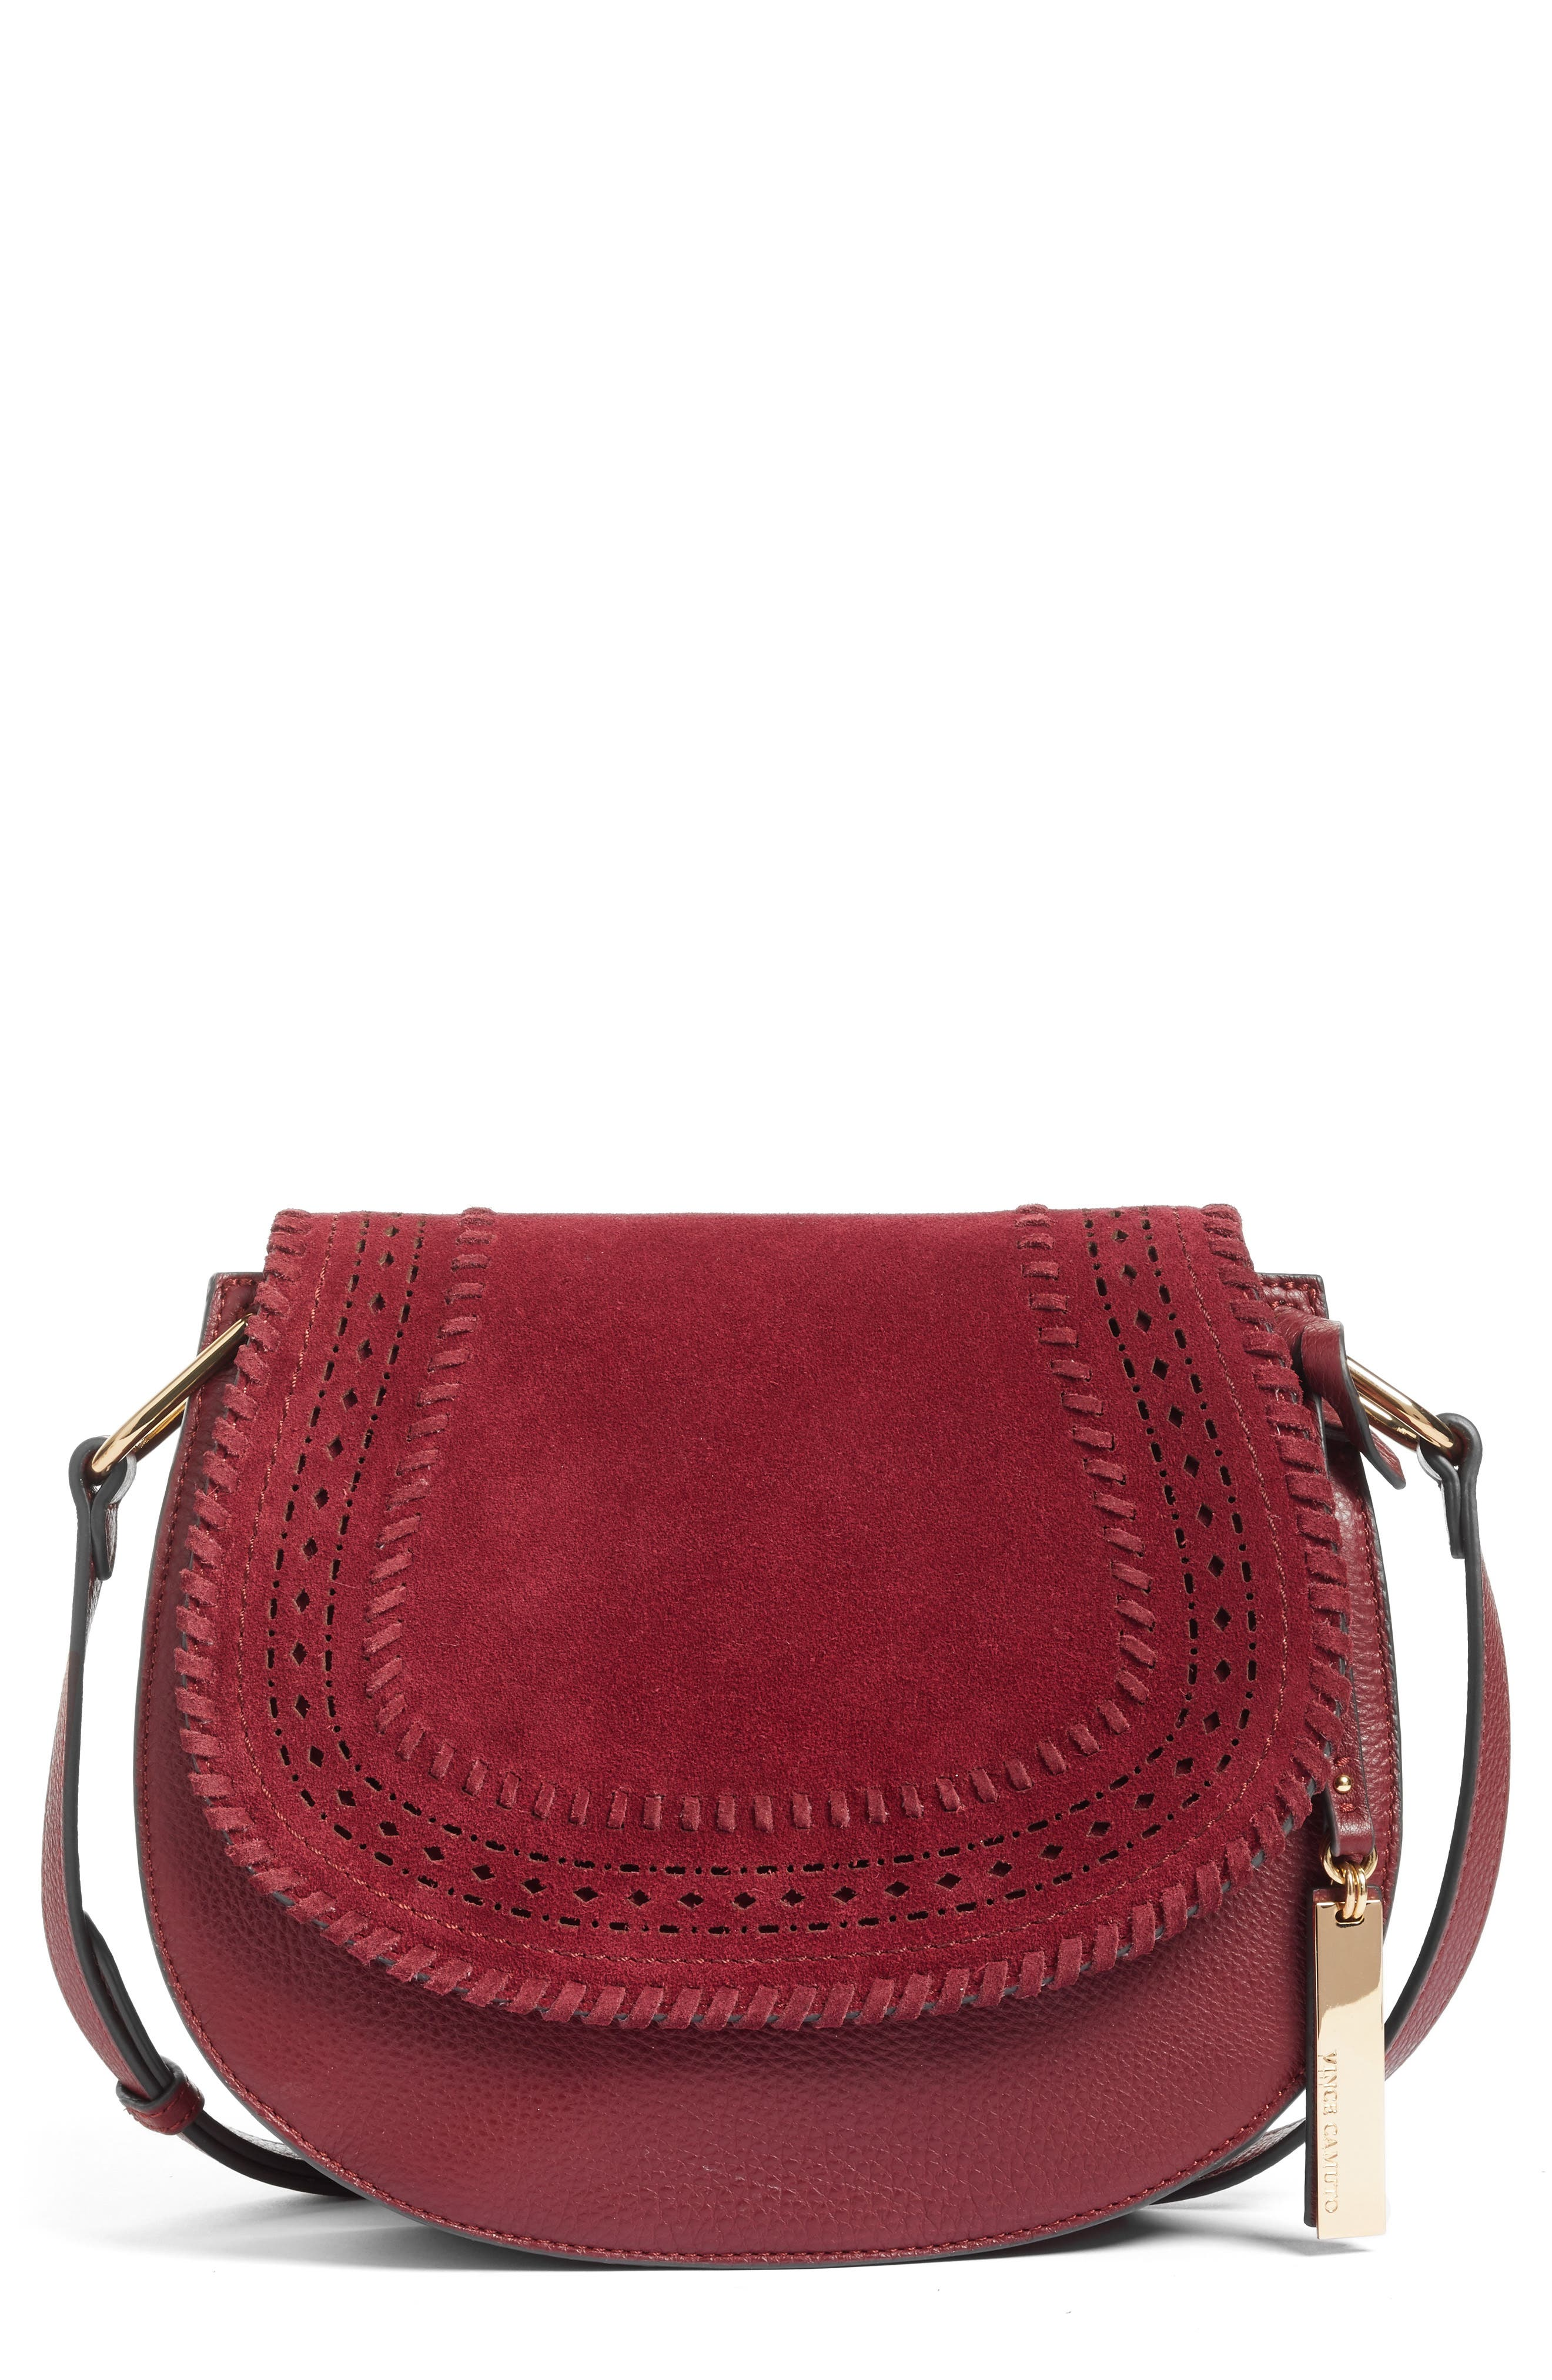 Alternate Image 1 Selected - Vince Camuto Kirie Suede & Leather Crossbody Saddle Bag (Nordstrom Exclusive)